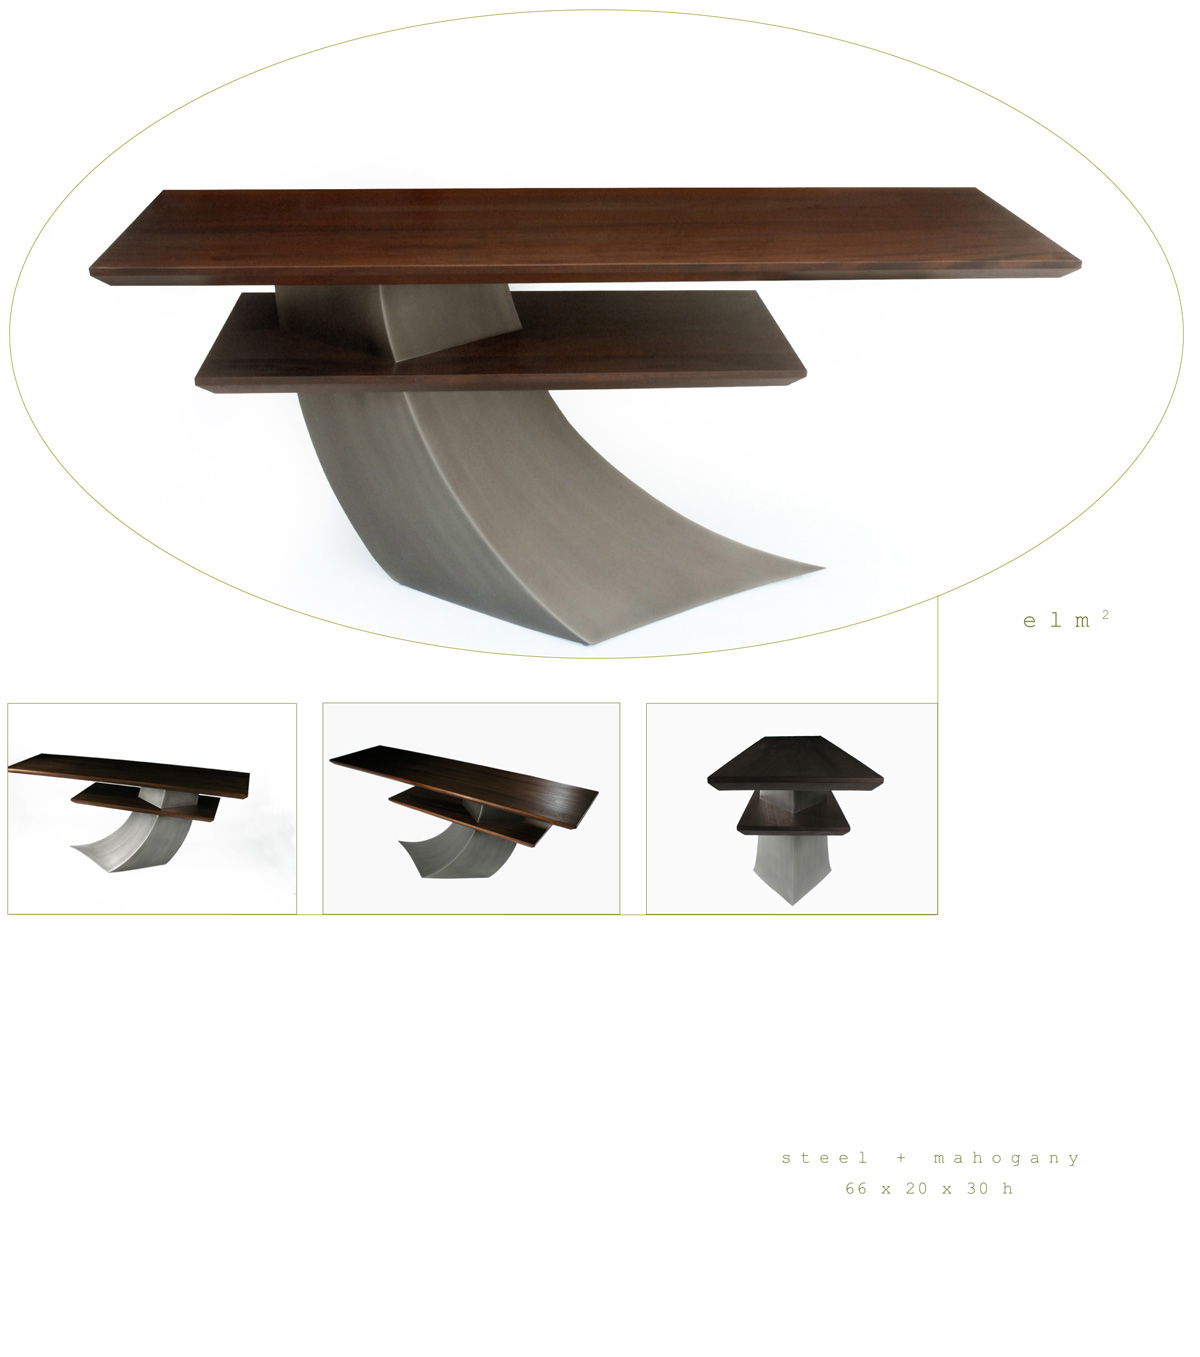 Elm 2 is a contemporary console made out of steel and mahogany measuring 66 x 20 x 30 inches made by Chad Manley Design.